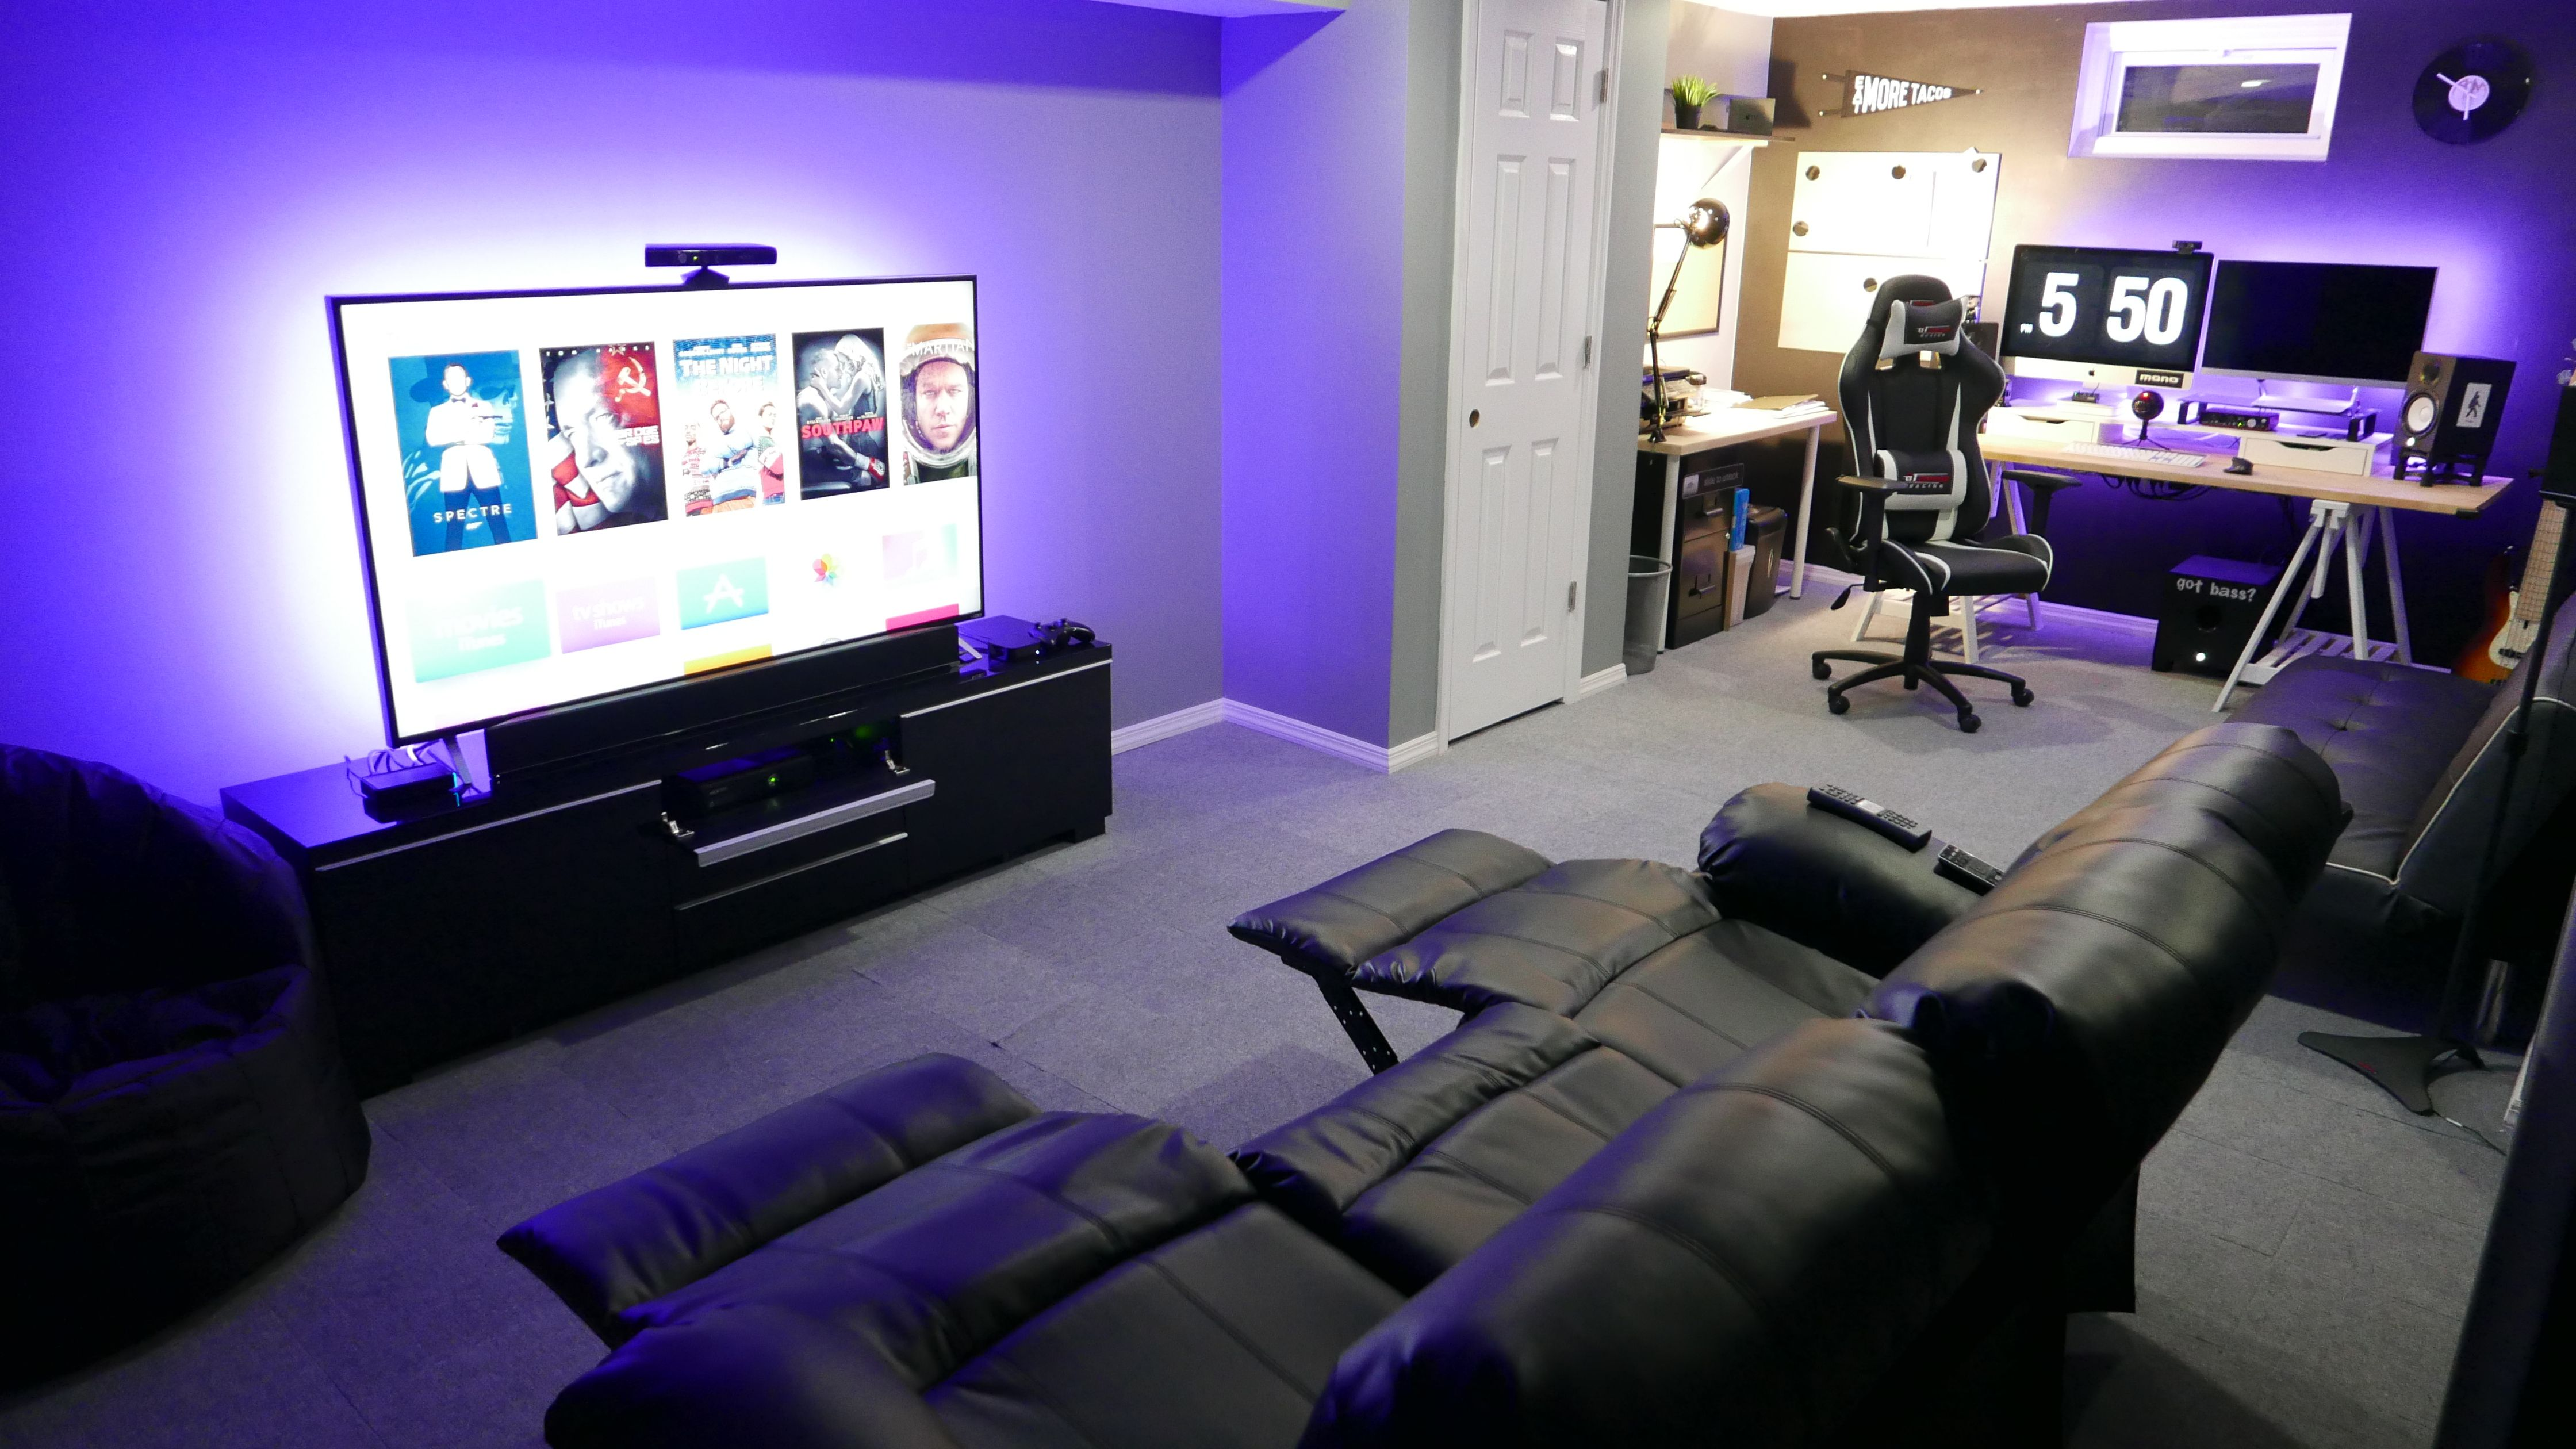 Man Cave Basement Office Gamer Room Entertainment Room Game